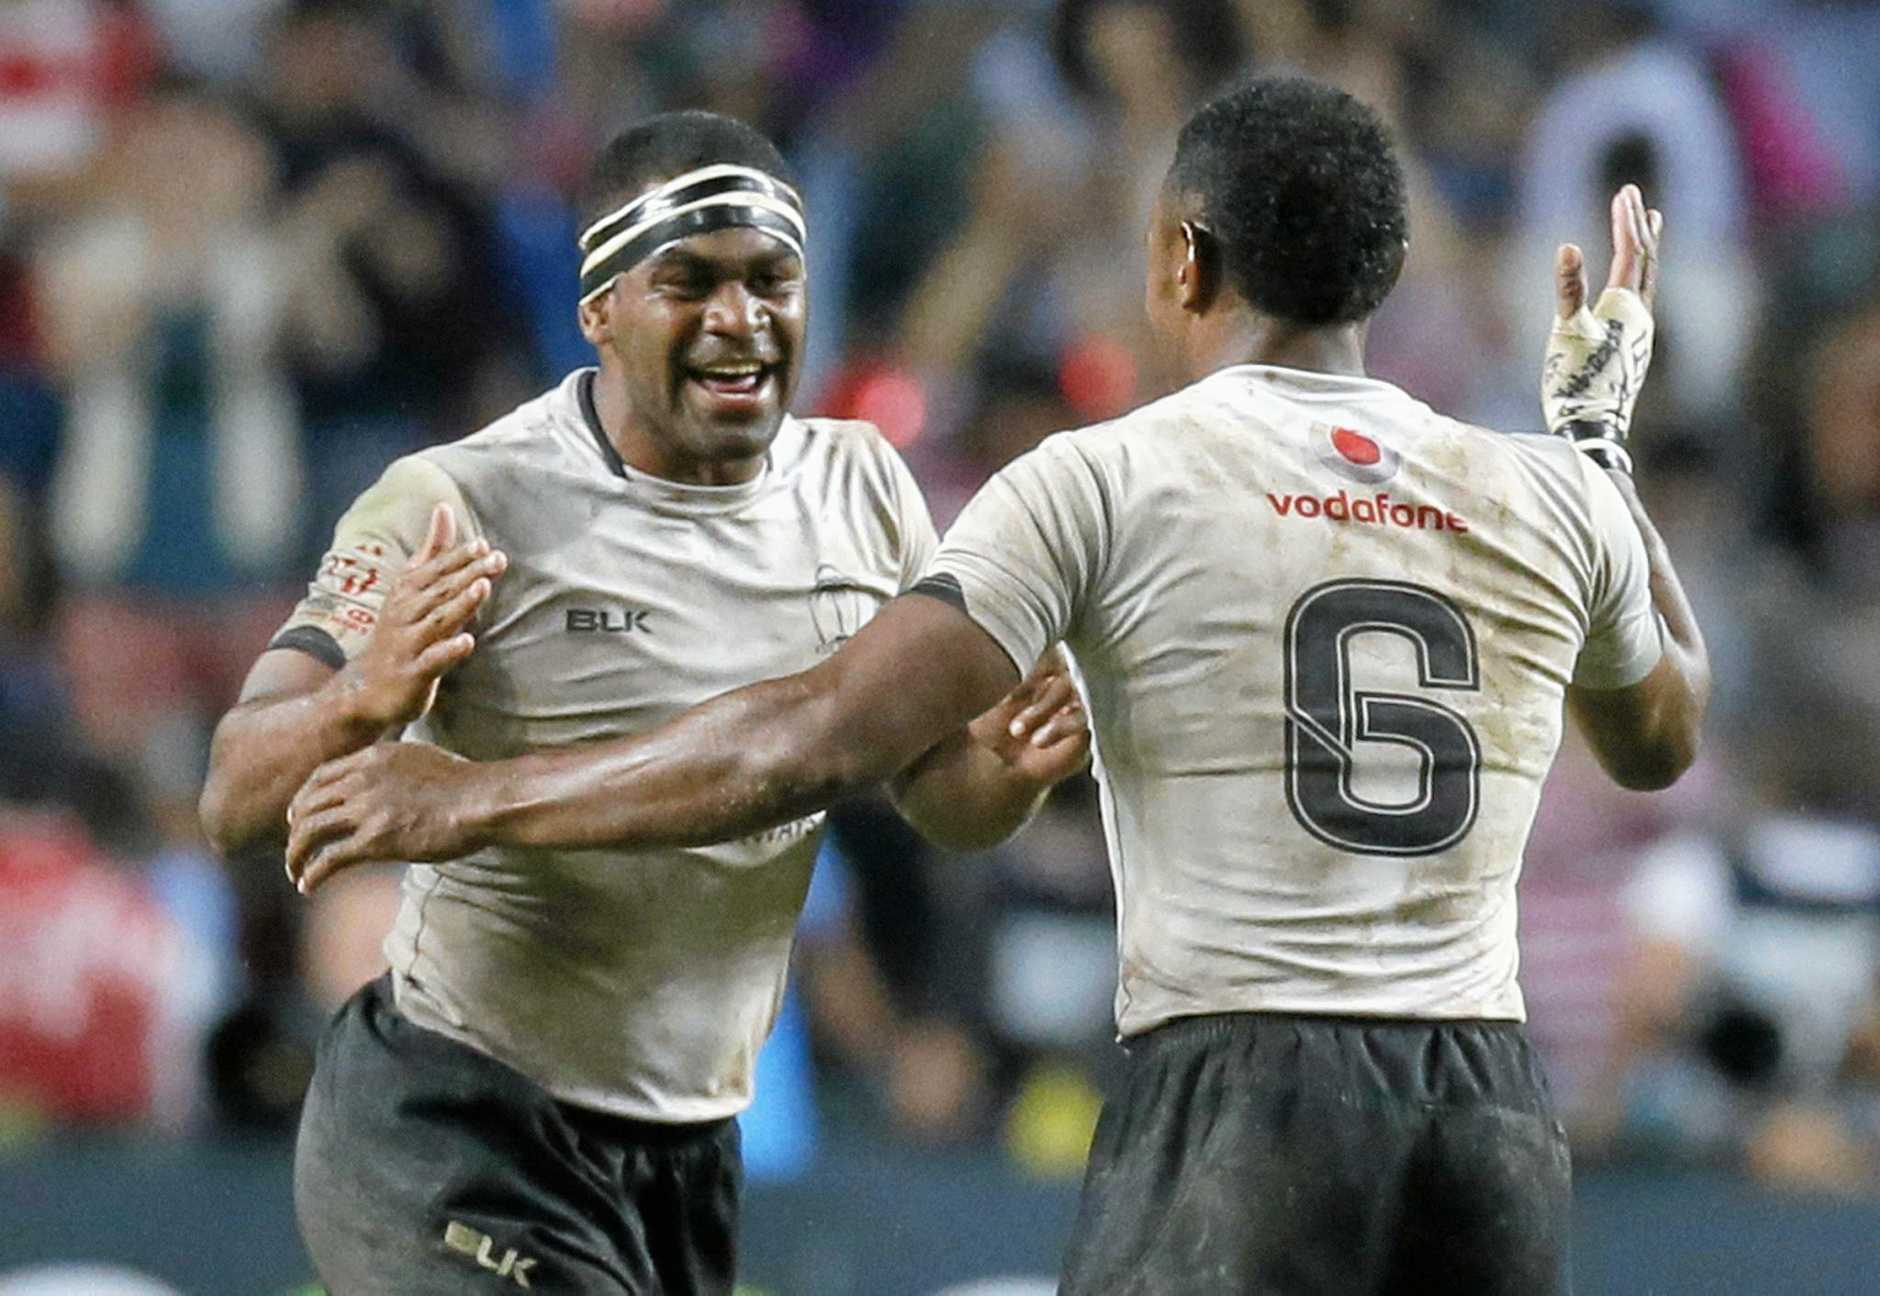 Fiji's Vatemo Ravouvou (left) and Amenoni Nasilasila celebrate after winning the final match of the Hong Kong Sevens rugby tournament in April.